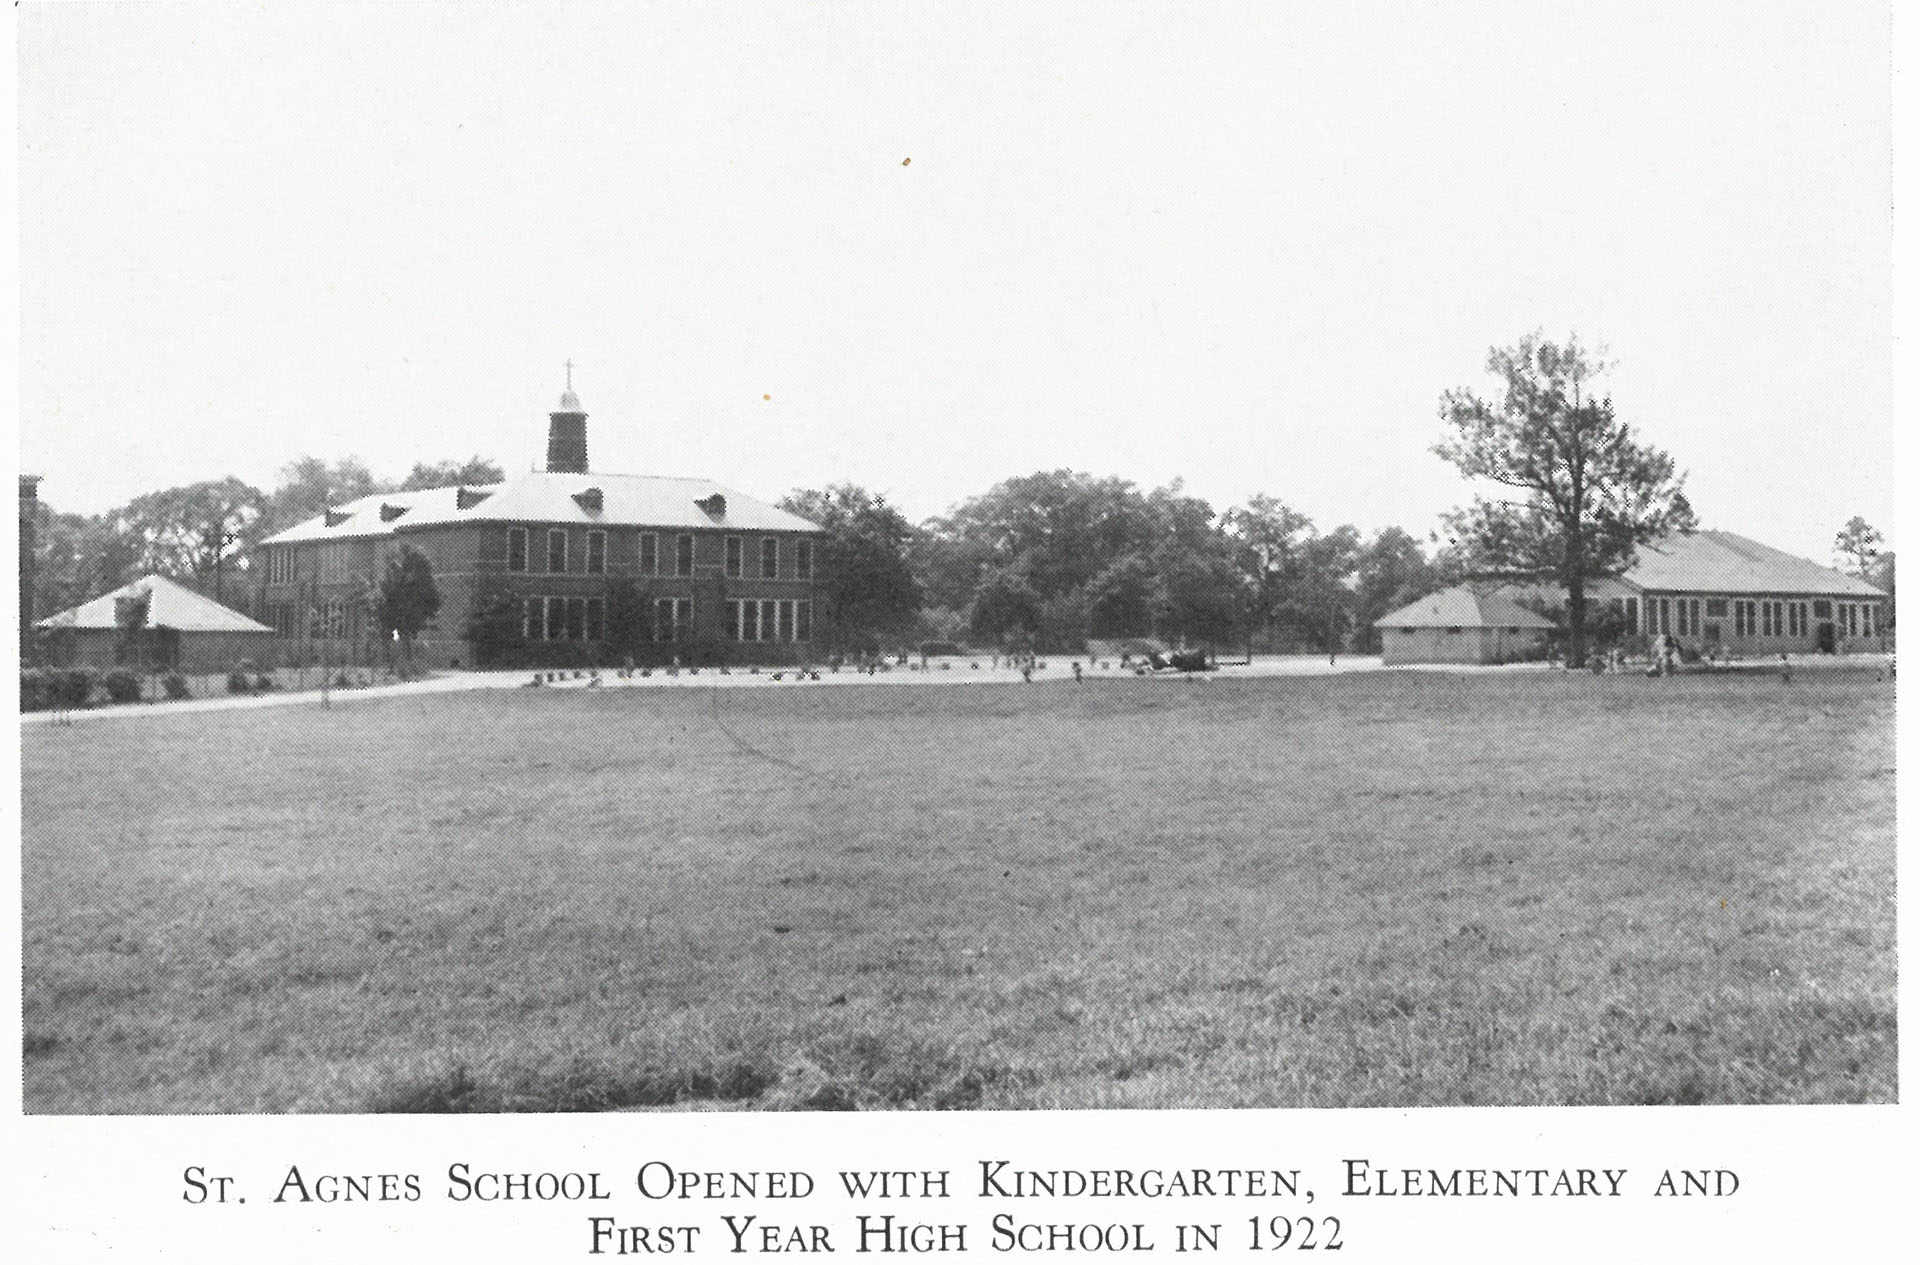 1920 – Commitment to Education for Sisters